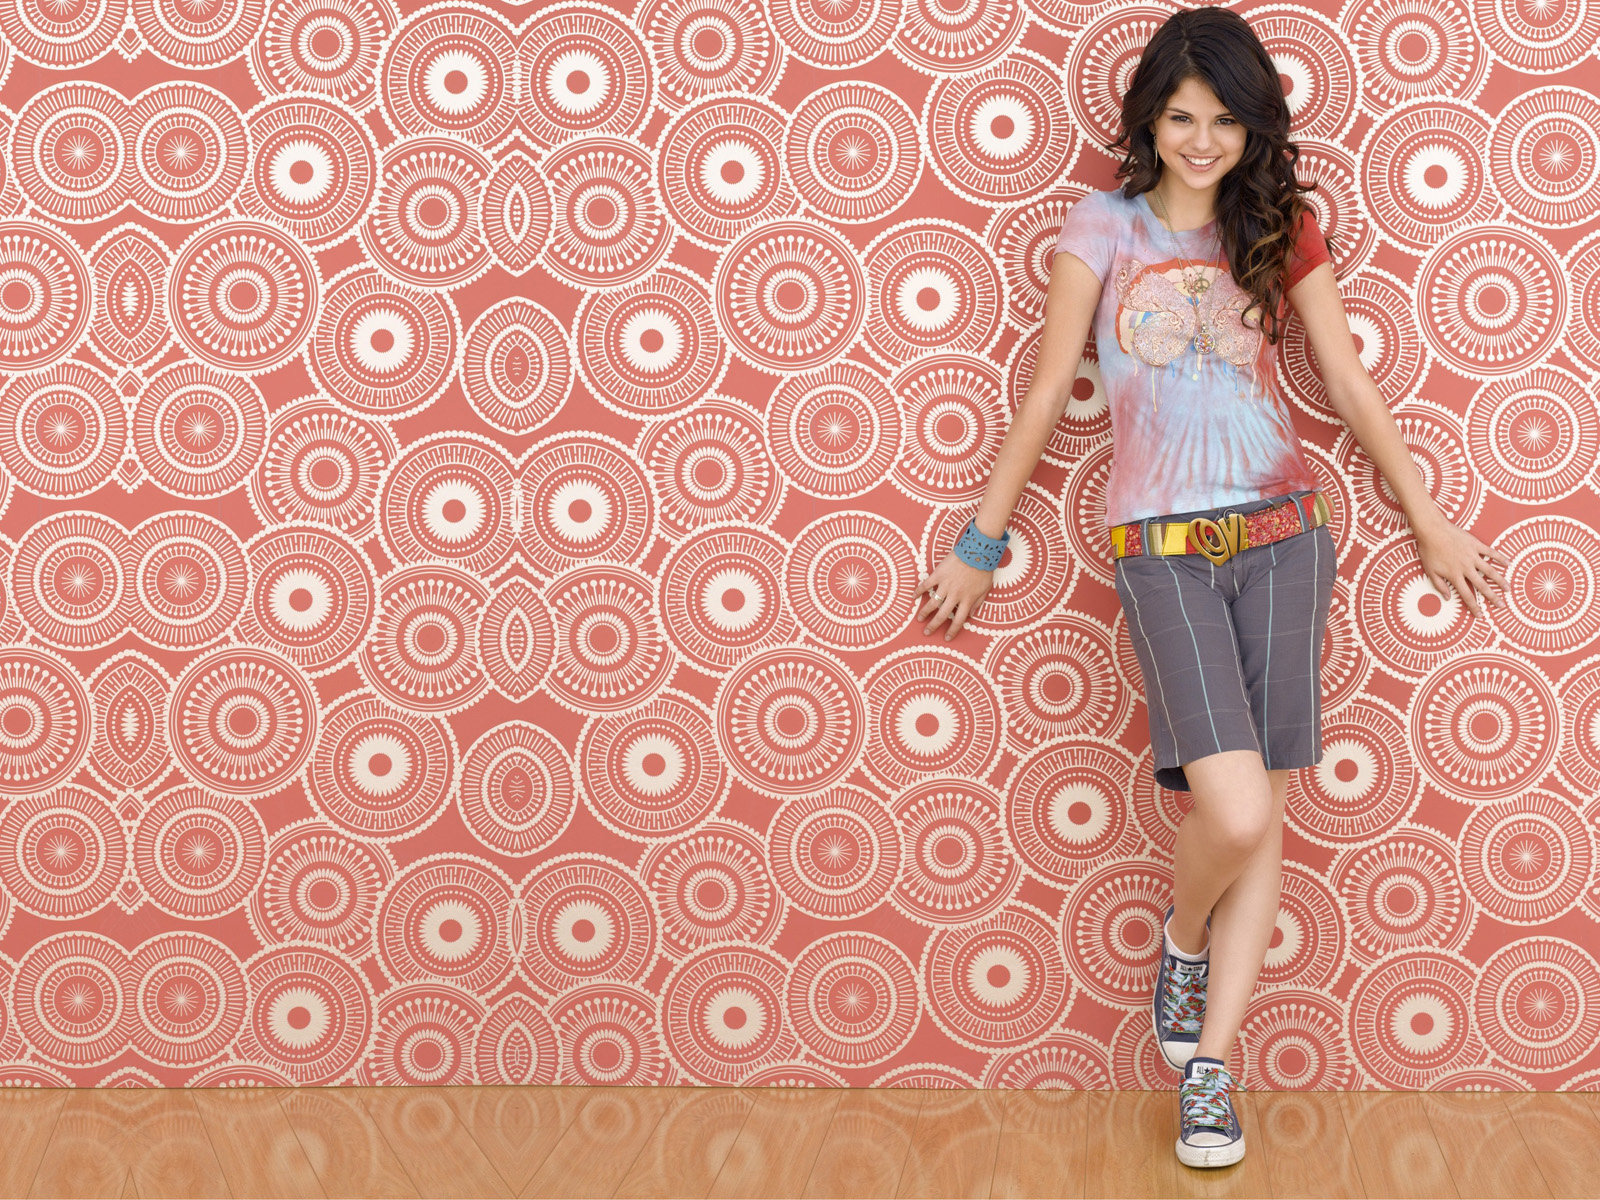 http://4.bp.blogspot.com/-9KSkEZ8KdpQ/UB-B-rqxGTI/AAAAAAAAA3o/0d9DCdpkLDQ/s1600/The-best-top-desktop-selena-gomez-wallpapers-selena-gomez-wallpaper-hd-1.jpg